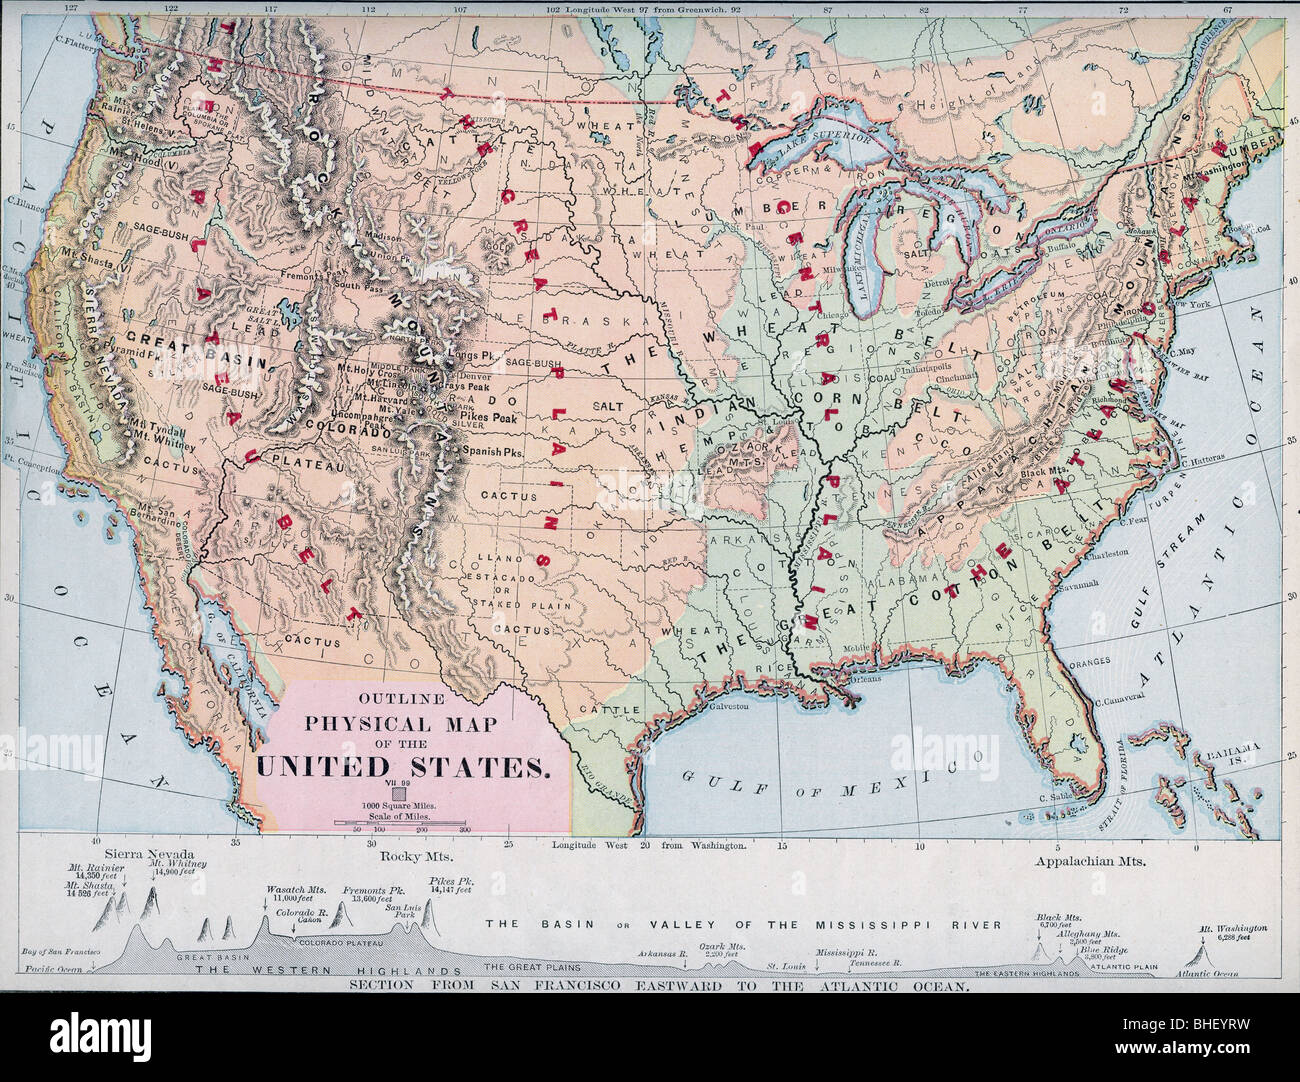 Old Physical Map Of USA From Original Geography Textbook - Physical map of usa